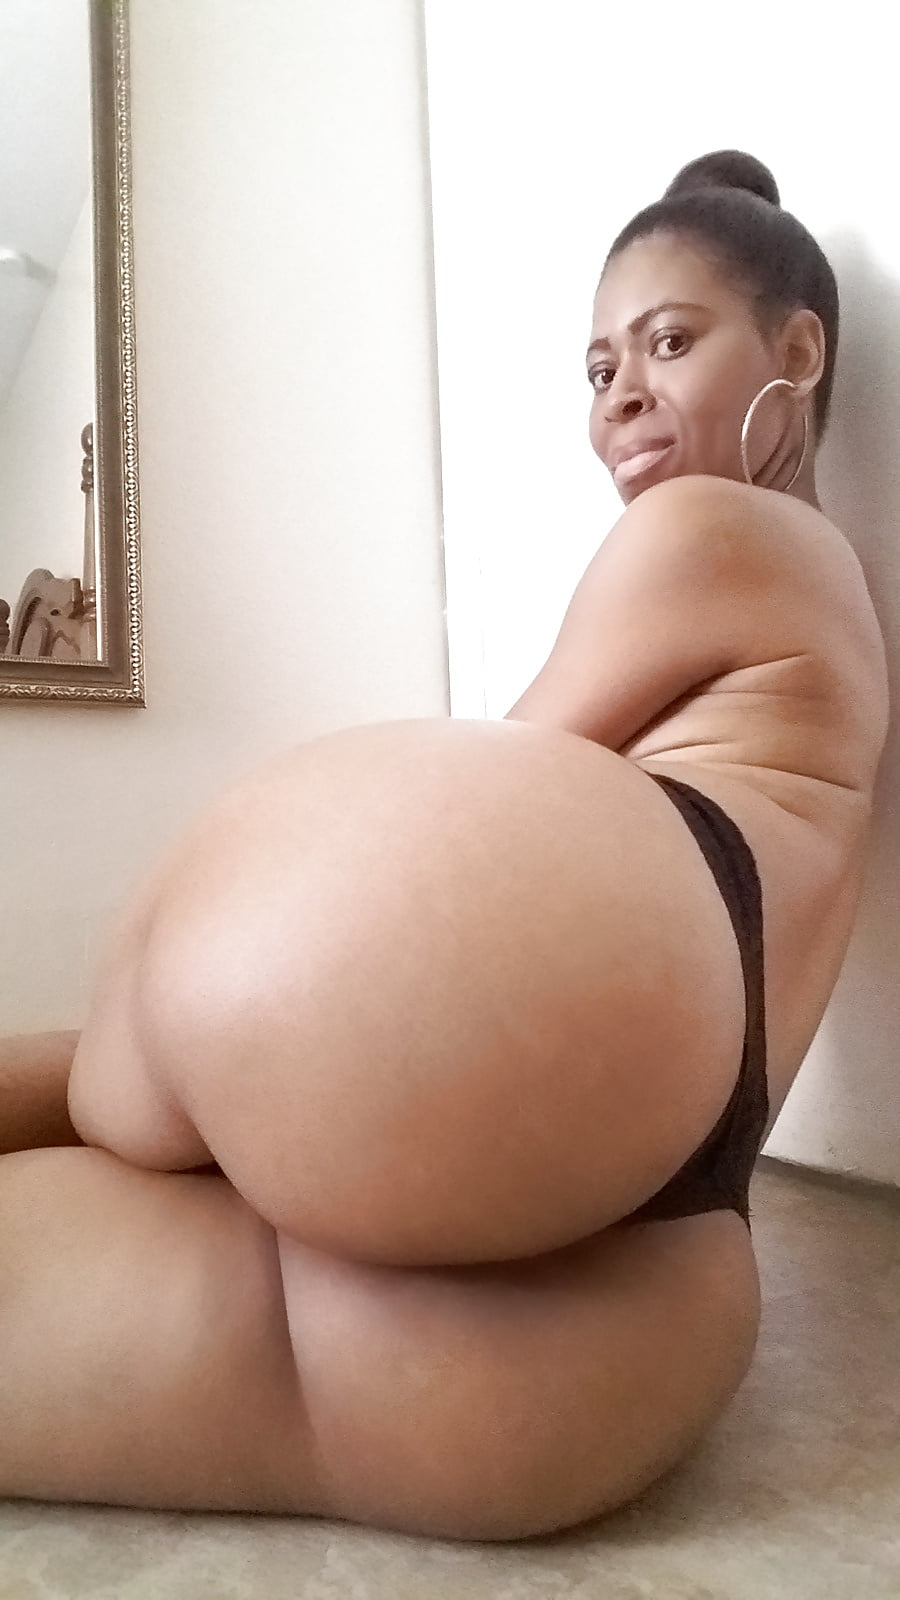 Another phat ass booty